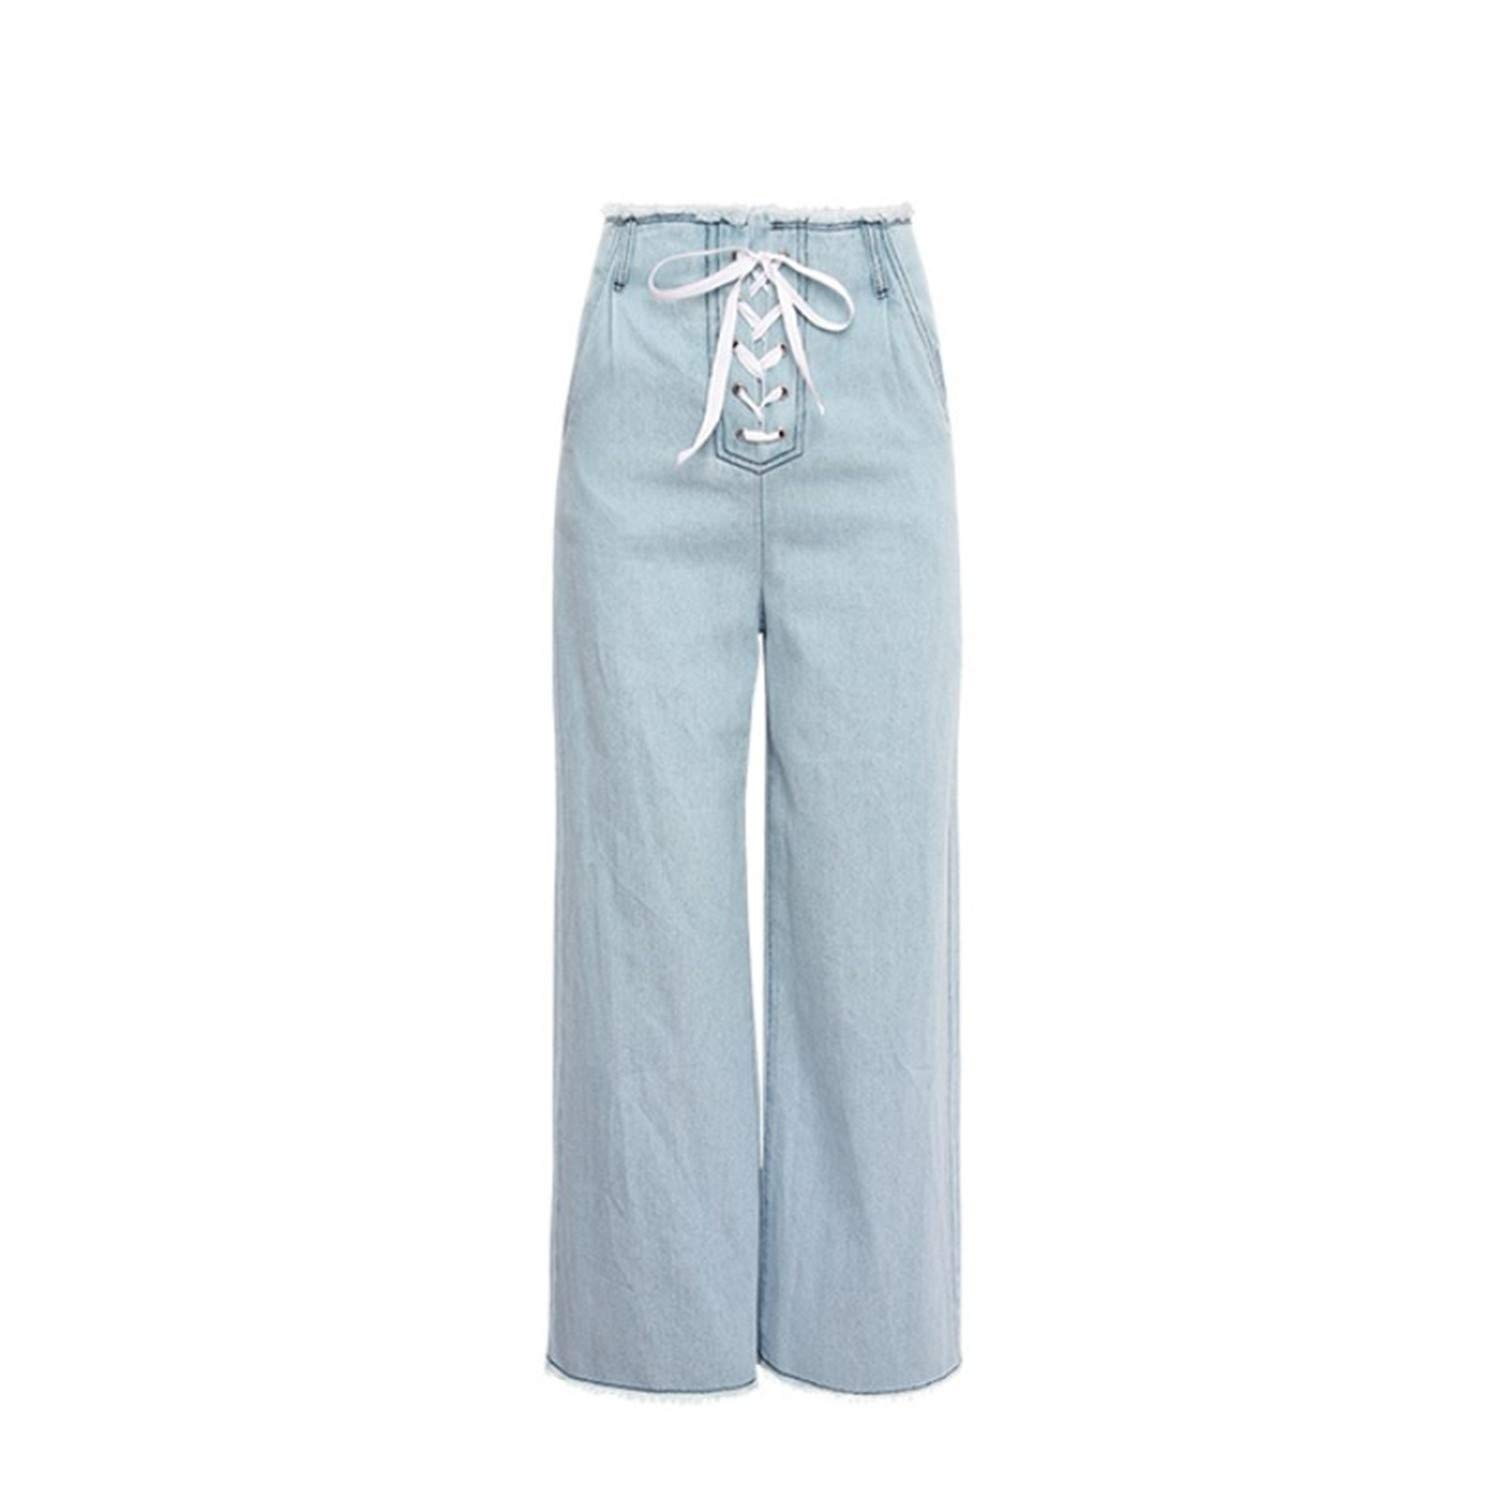 George Gouge Cotton Womens Jeans Drawstring Wide Leg Jeans ...